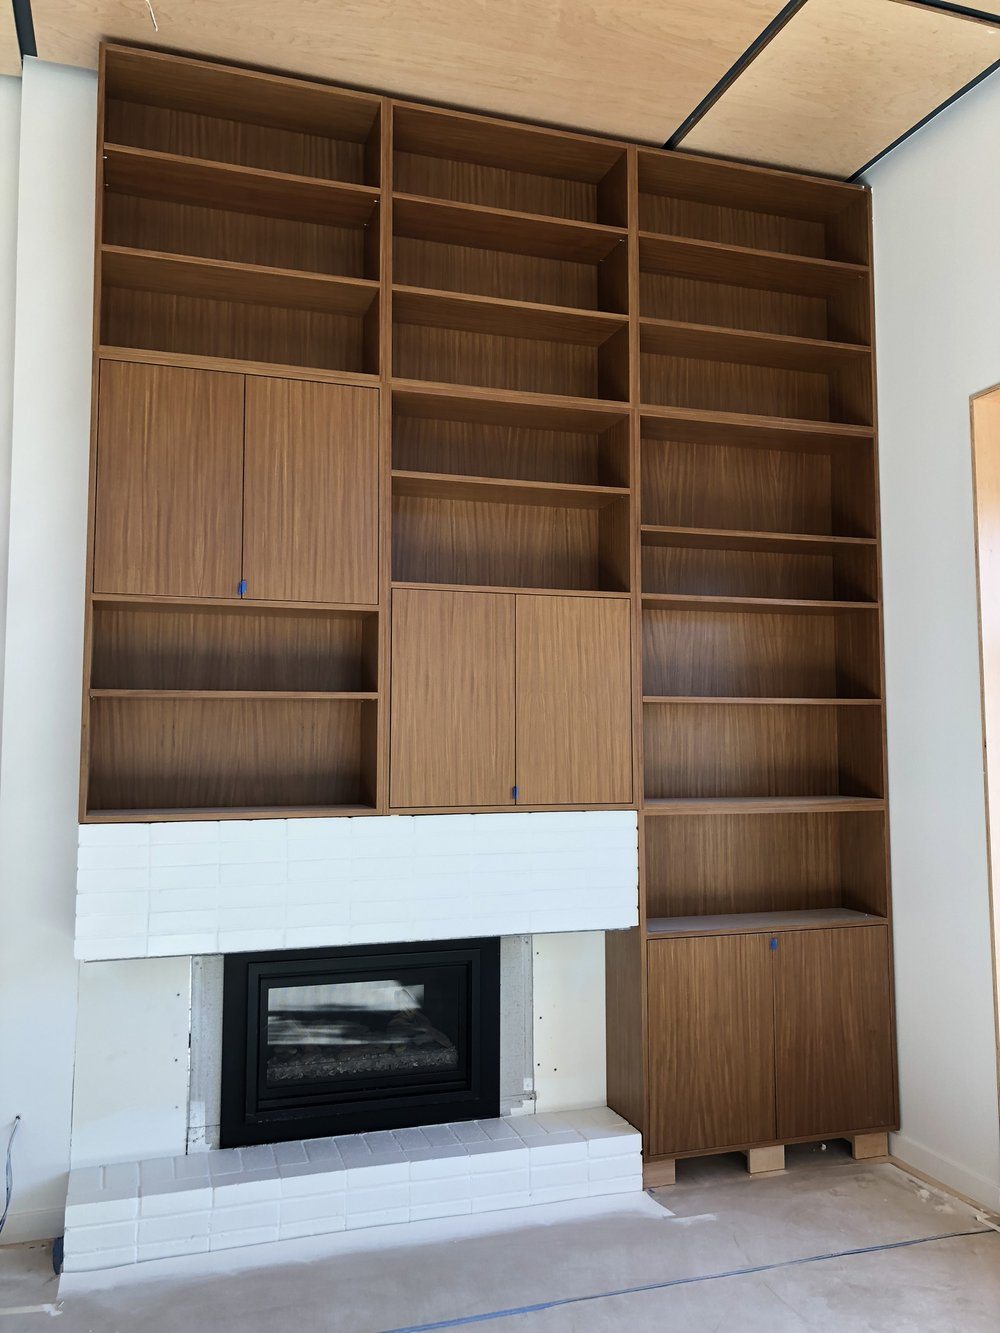 beautiful bookcase in afromosia veneer by Laak Woodworks and a white painted fireplace